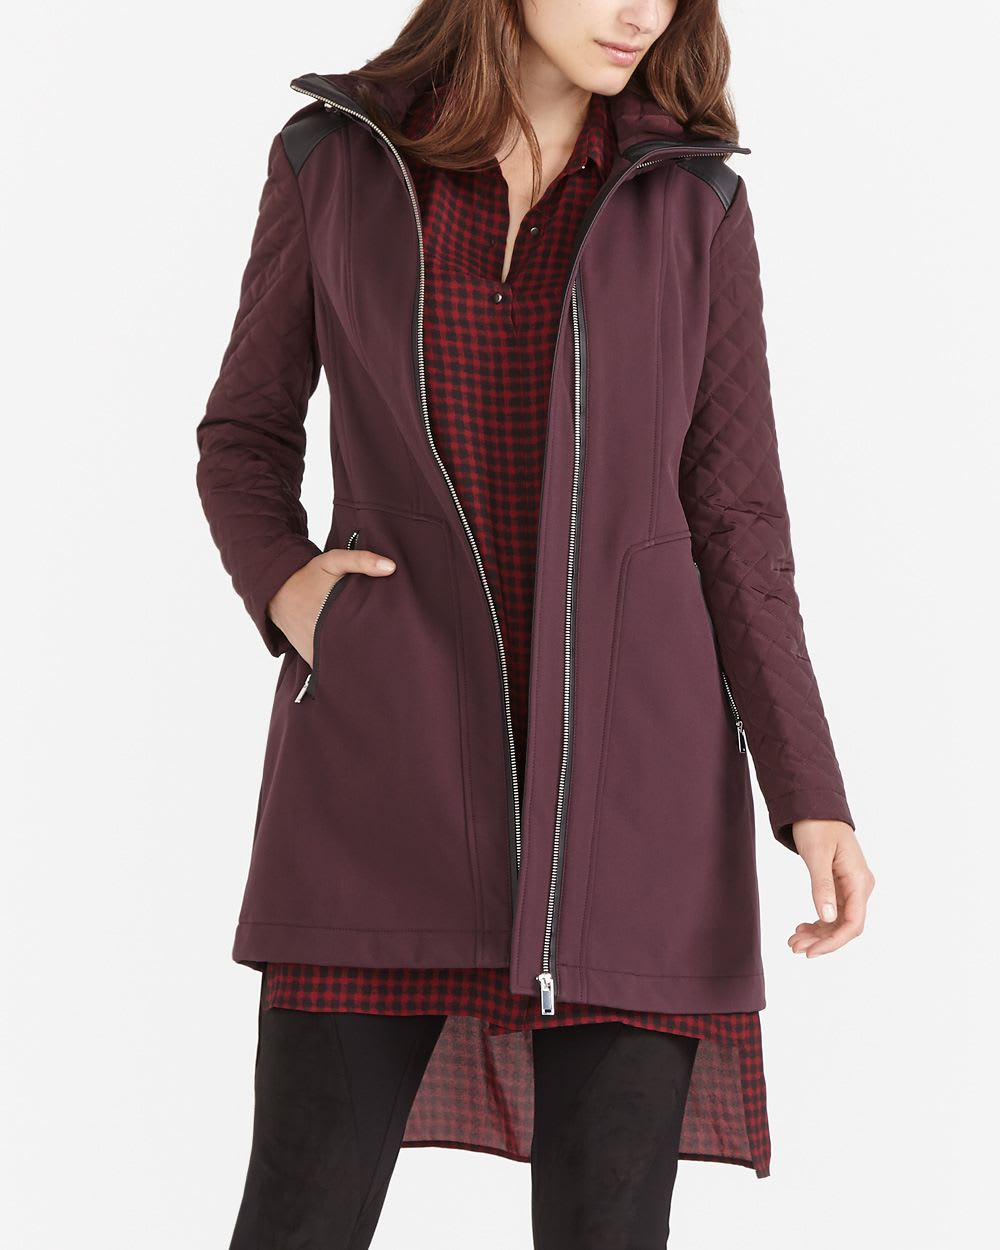 Blazers Canada: Reitmans Canada Deals: 48-Hour Dress Sale + 30% Off